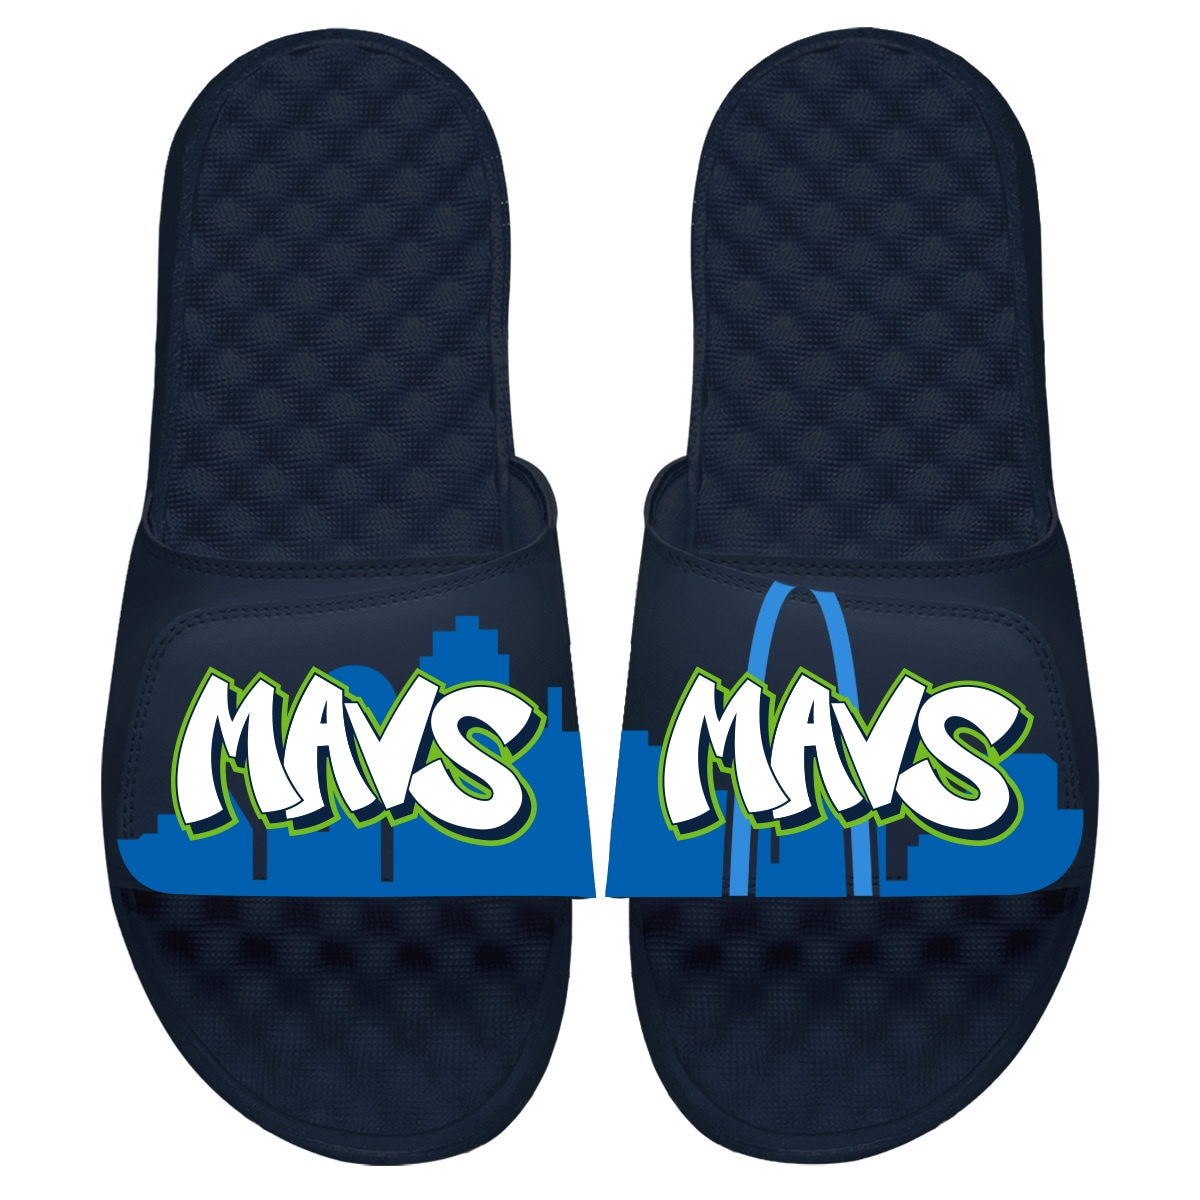 Dallas Mavericks ISlide 2019/20 City Edition Slide Sandals - Navy